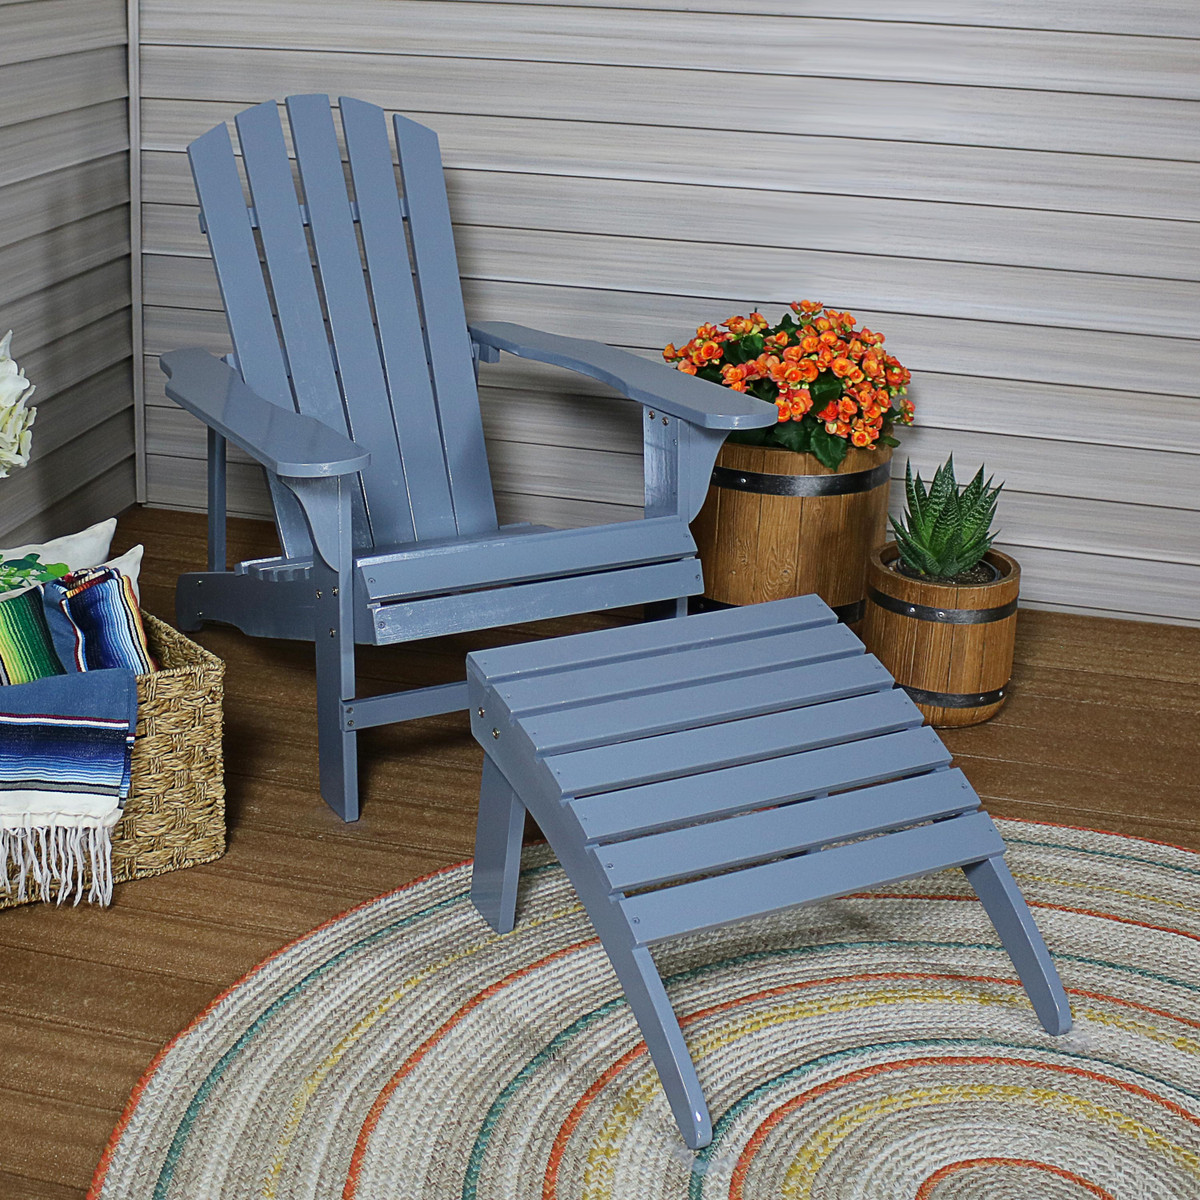 Prime Sunnydaze Classic Wooden Adirondack Chair And Ottoman Set Gmtry Best Dining Table And Chair Ideas Images Gmtryco